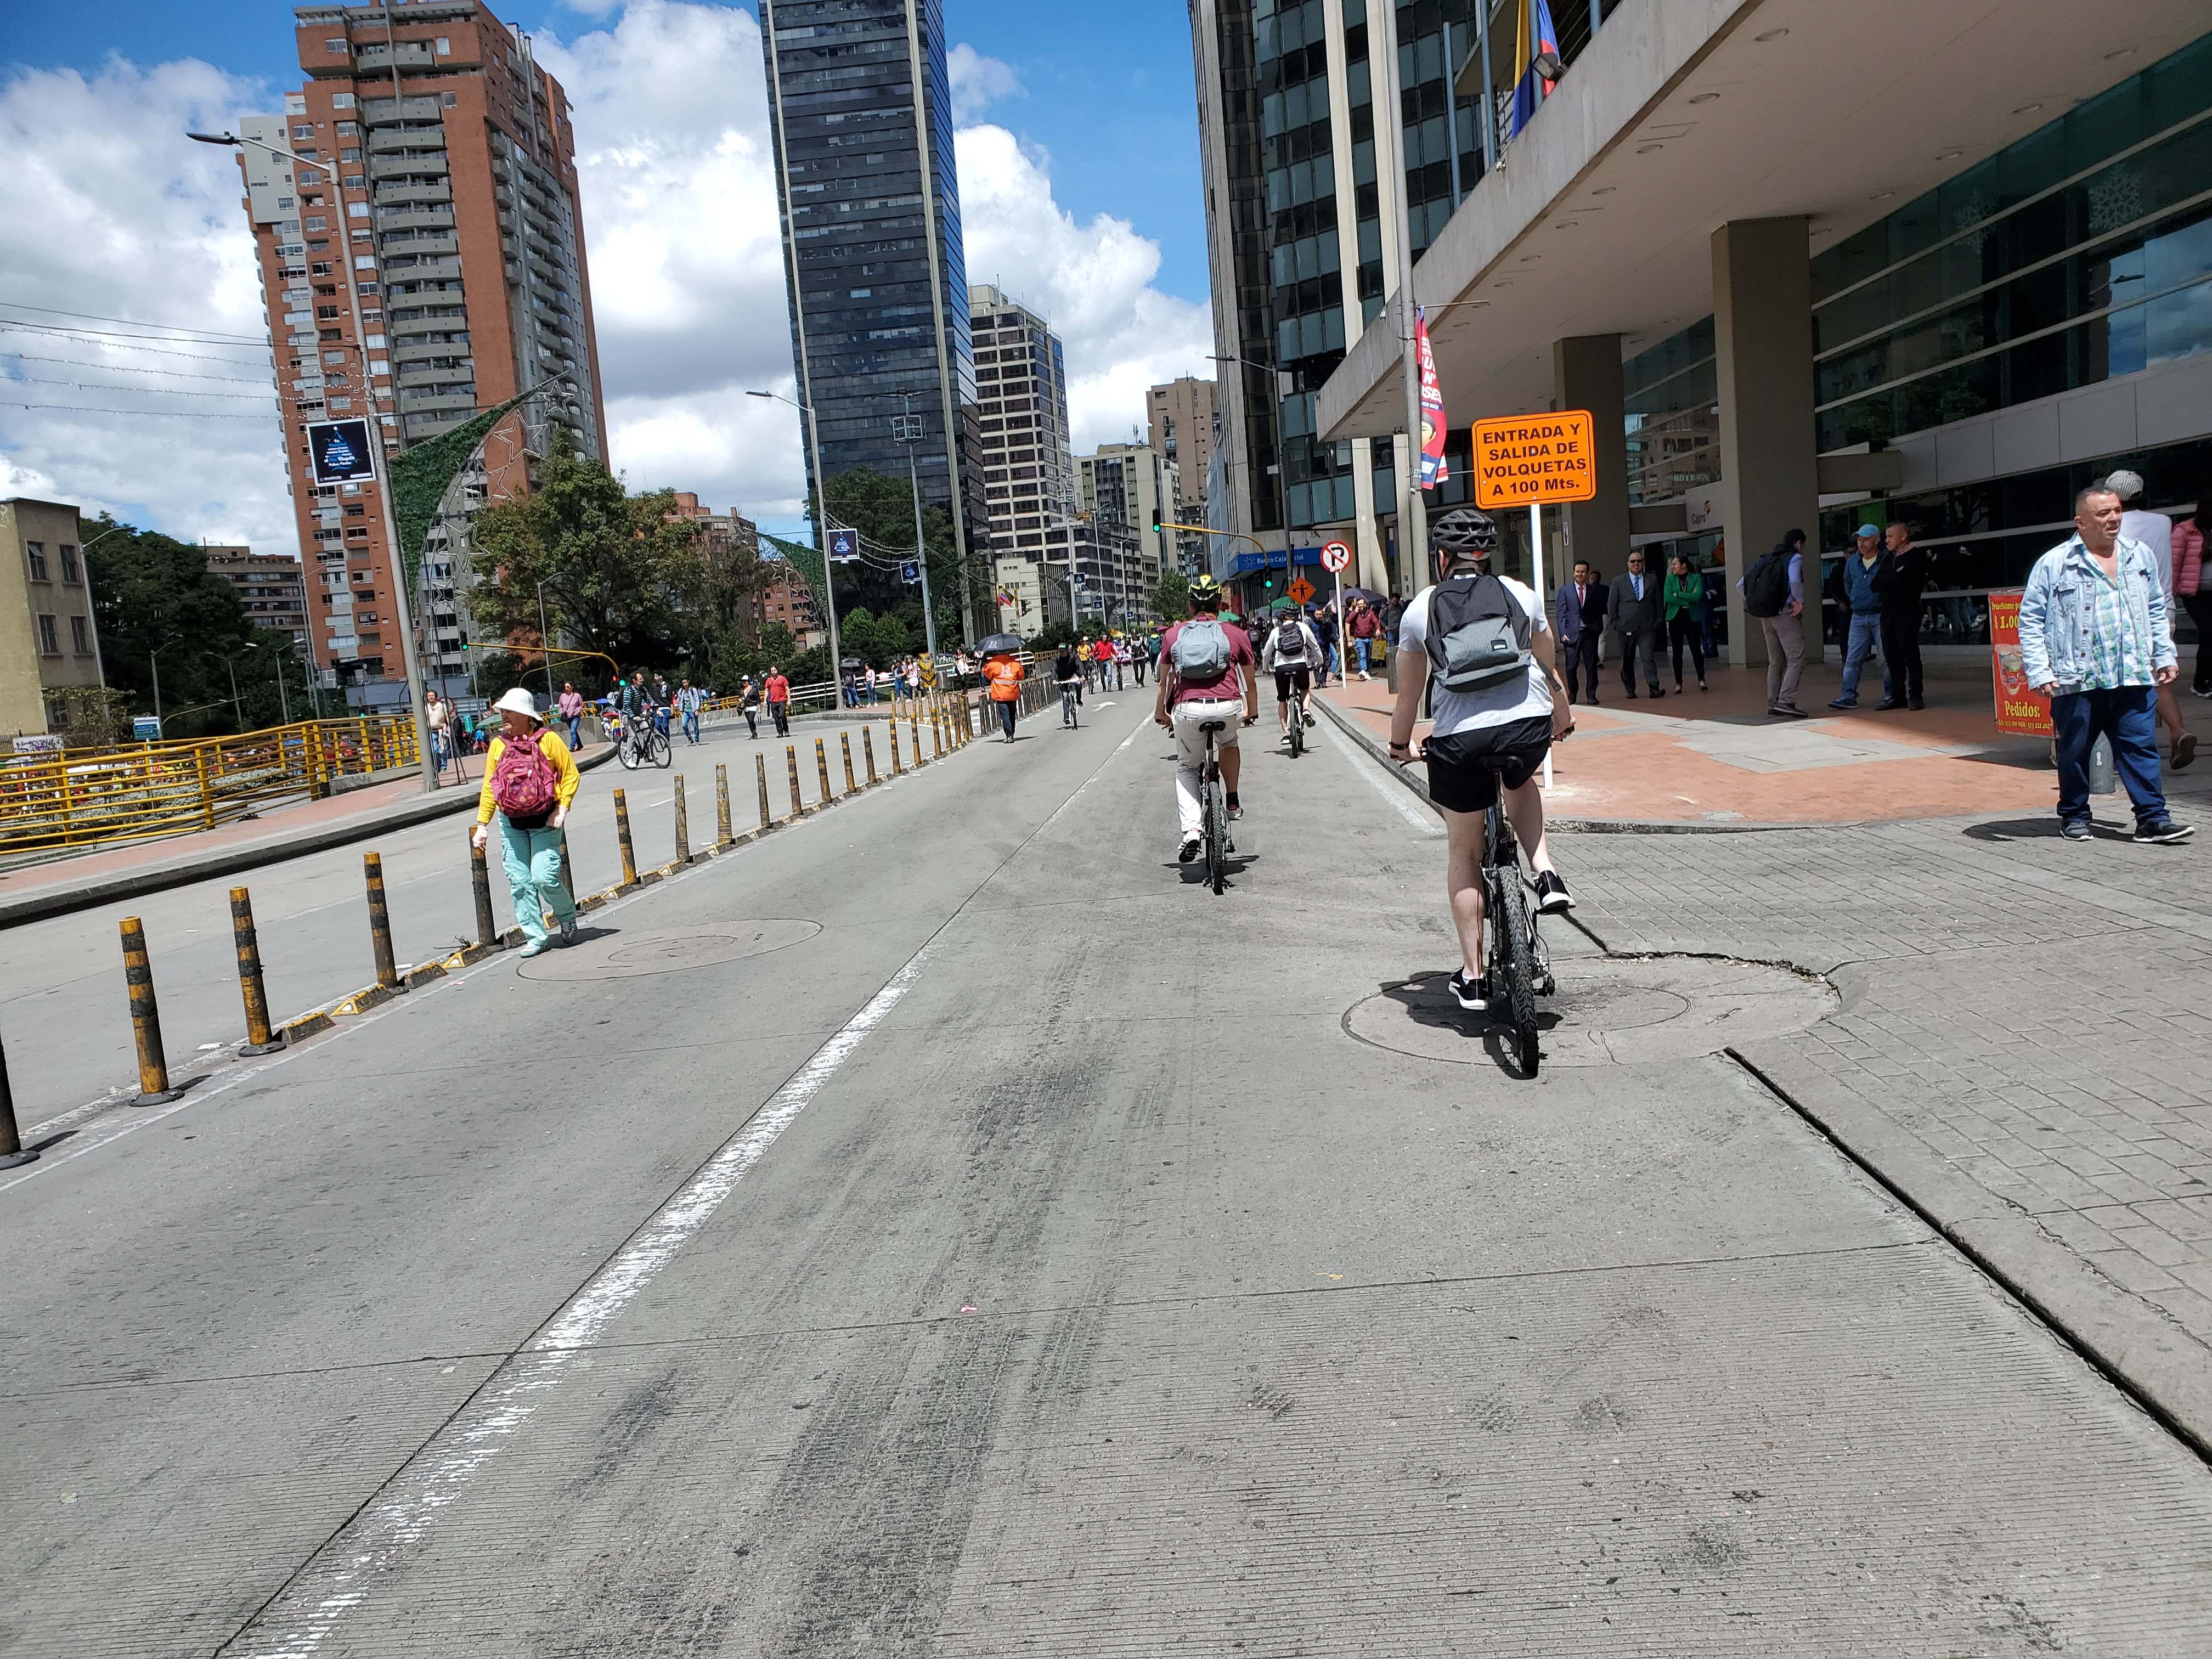 Cycling is safe in Bogotá , as the city has an ever-expanding bicycle lane network